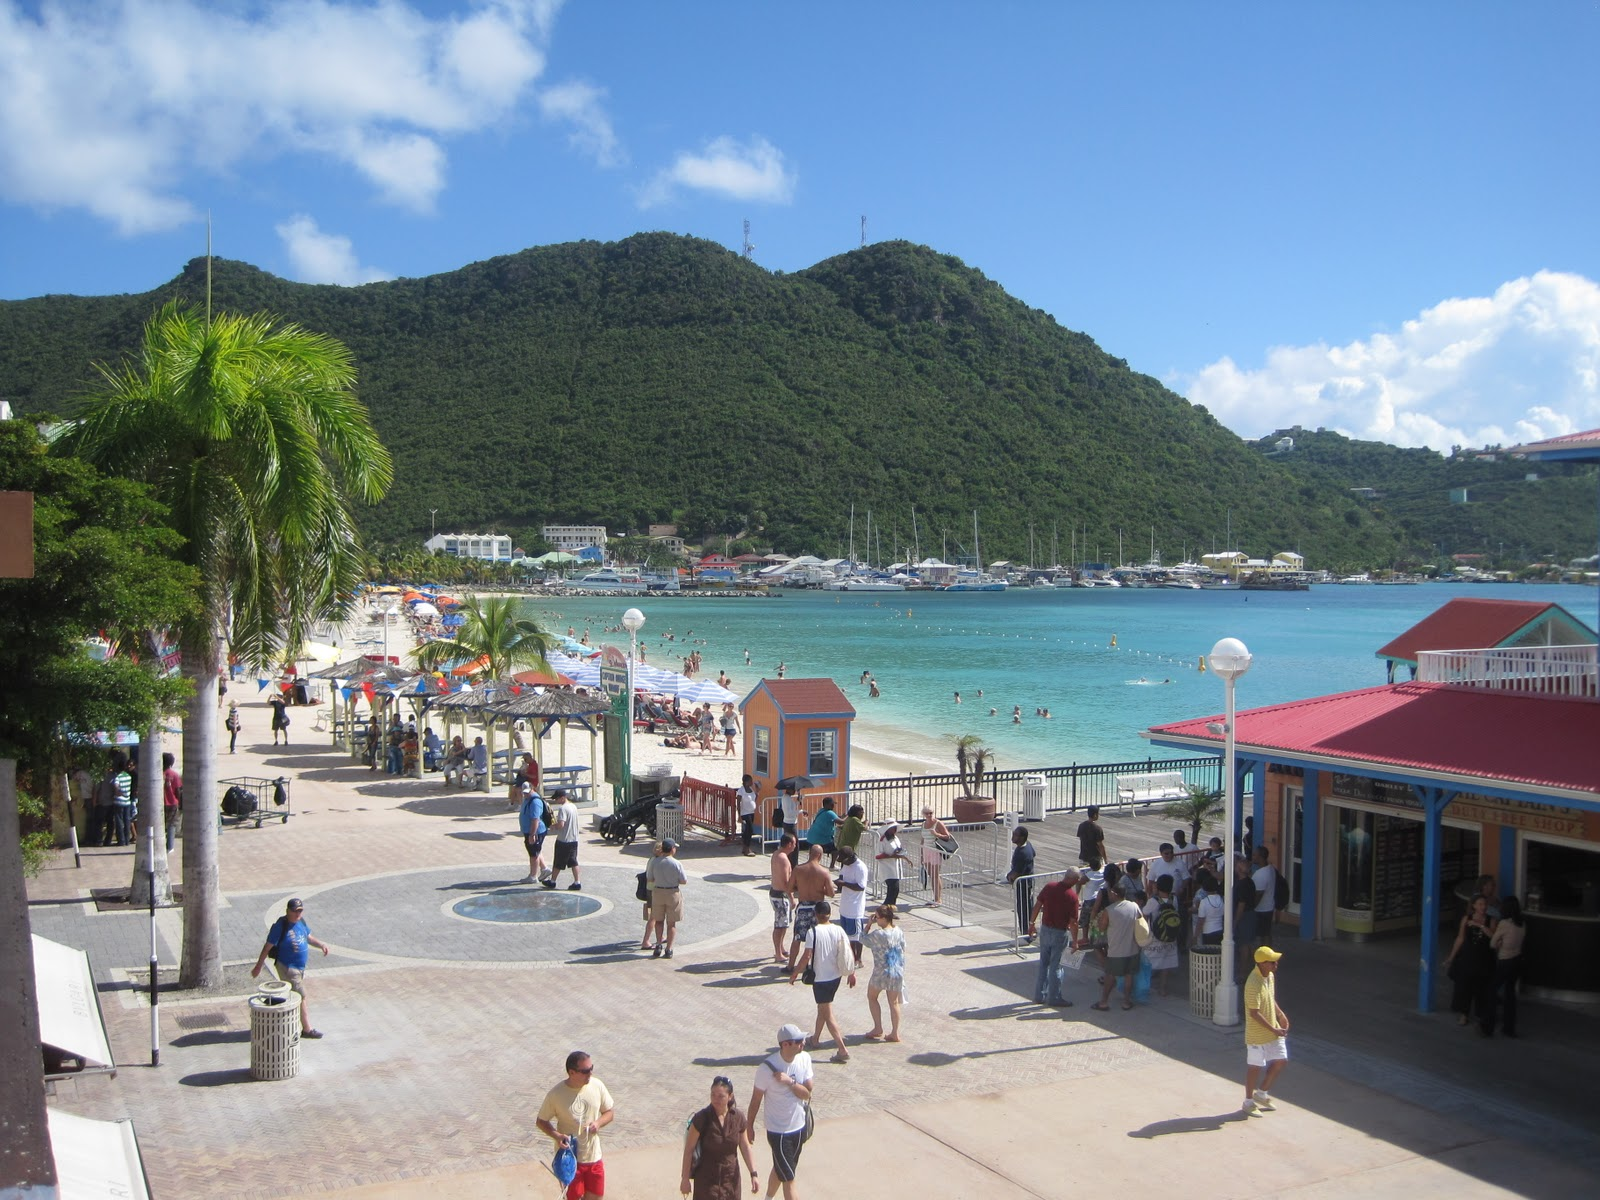 St Maarten Boardwalk - Things to do in St Maarten